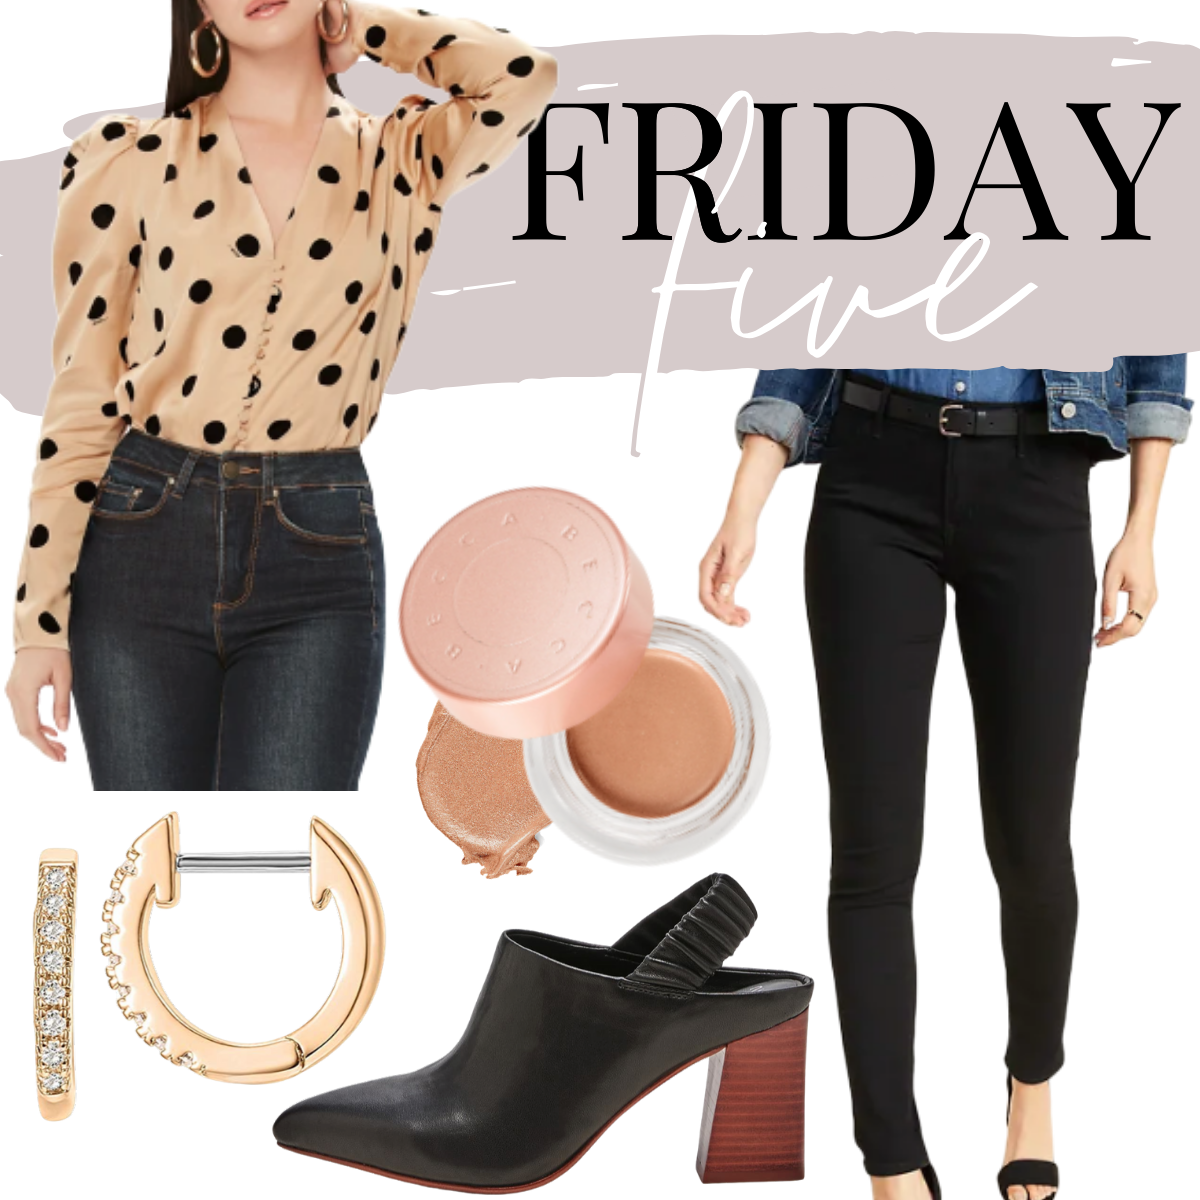 date night   Friday Favorites by Houston life and style blog, Haute and Humid: collage image of a polka dot blouse, black skinny jeans, huggie stud hoop earrings, sling back pumps and under eye brightening corrector.